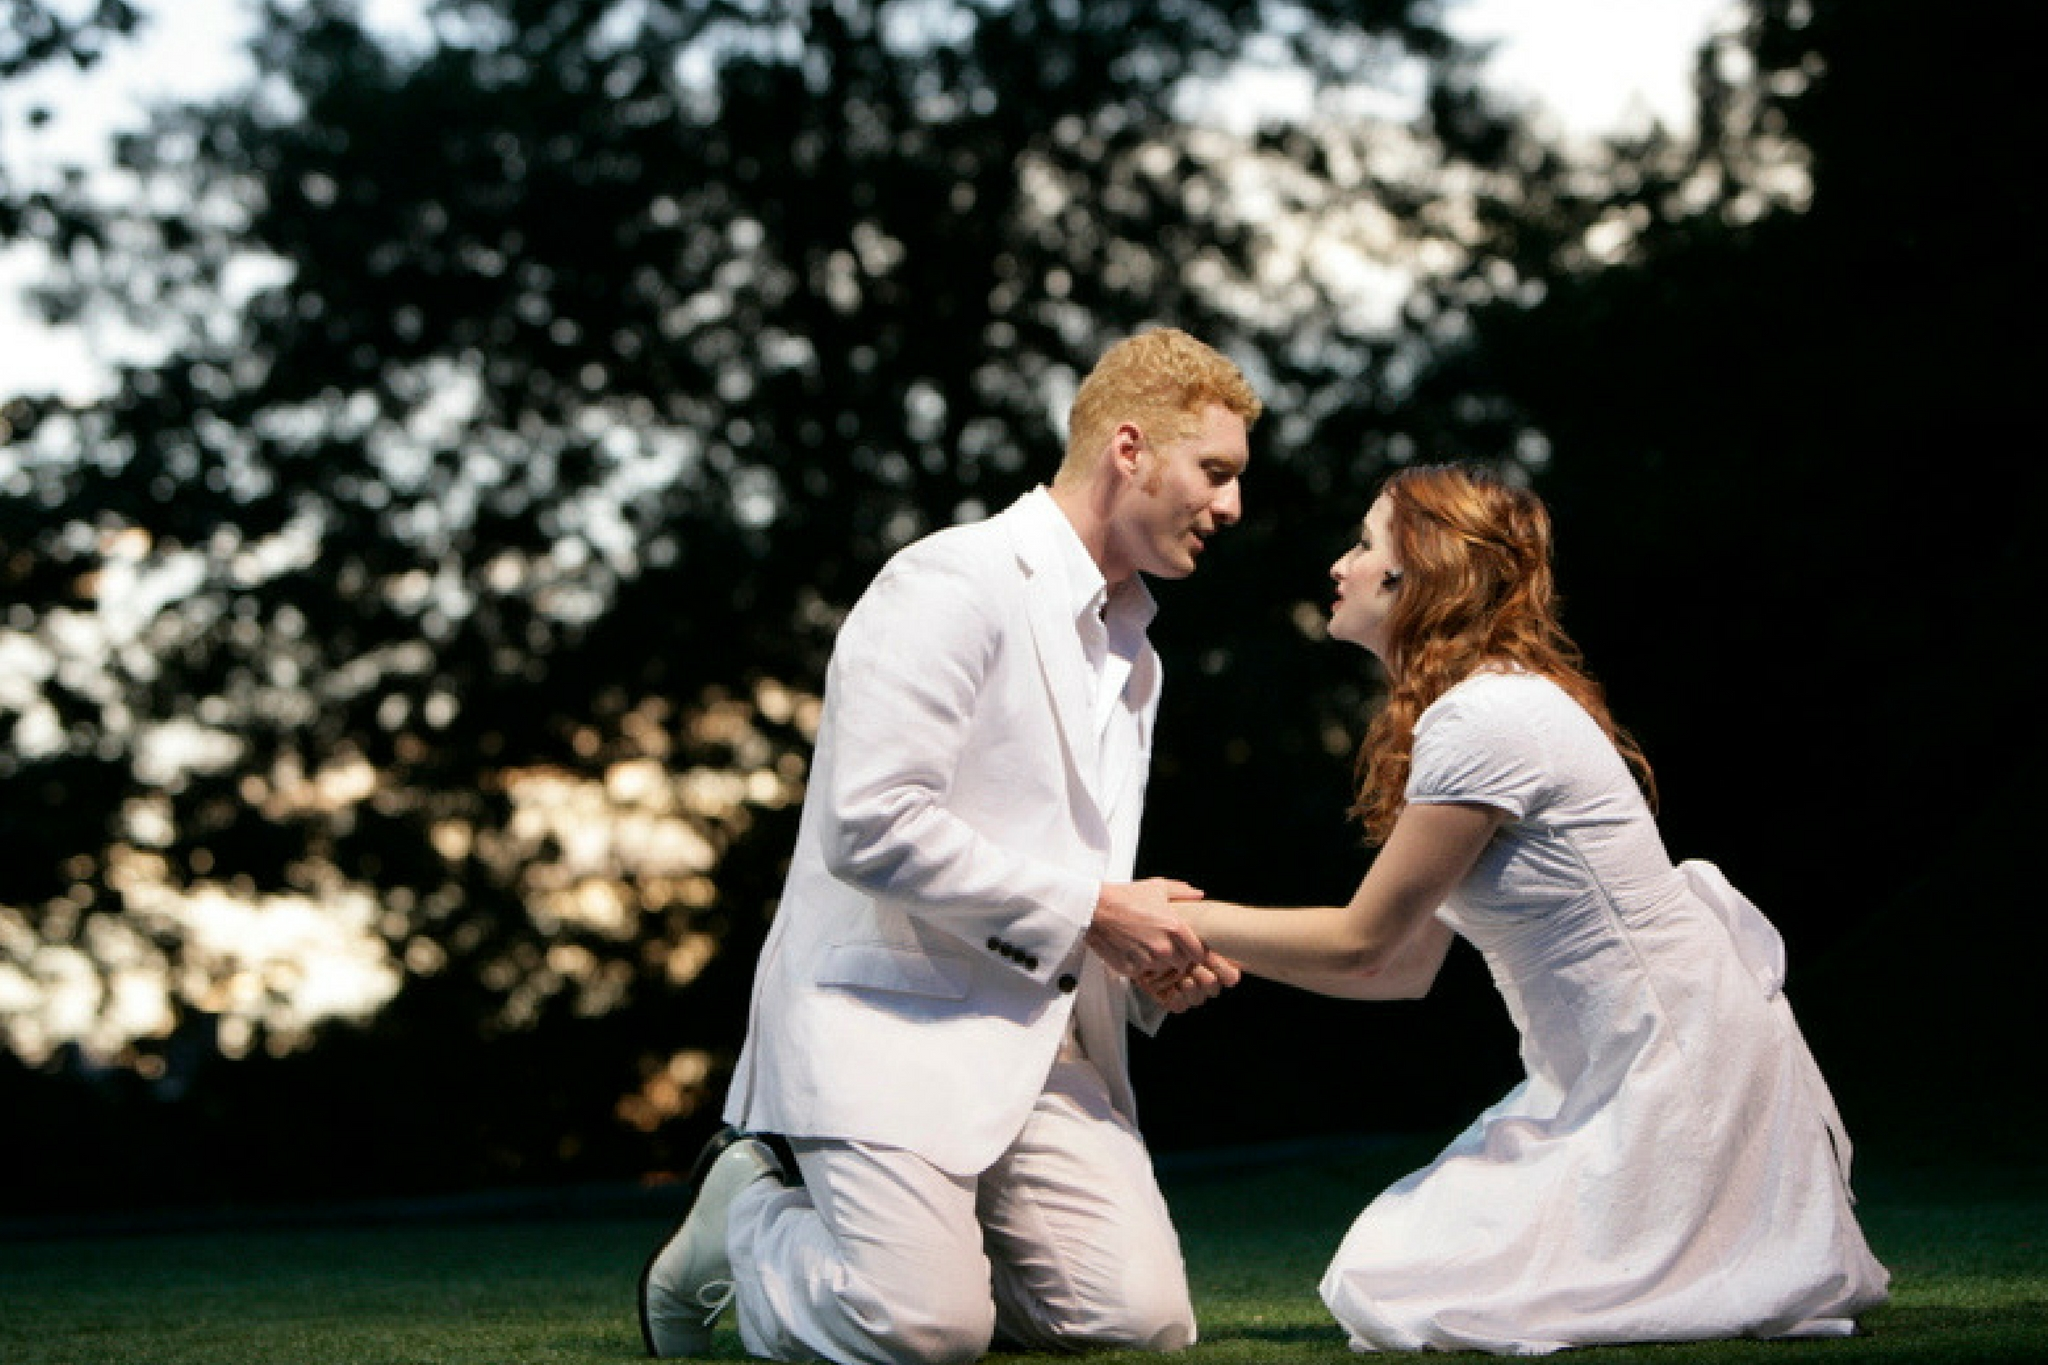 Ed Hoopman (Lysander) and Meghan Bradley (Hermia) in A Midsummer Night's Dream Shakespeare on the Common 2007-Photo by T. Charles Erickson